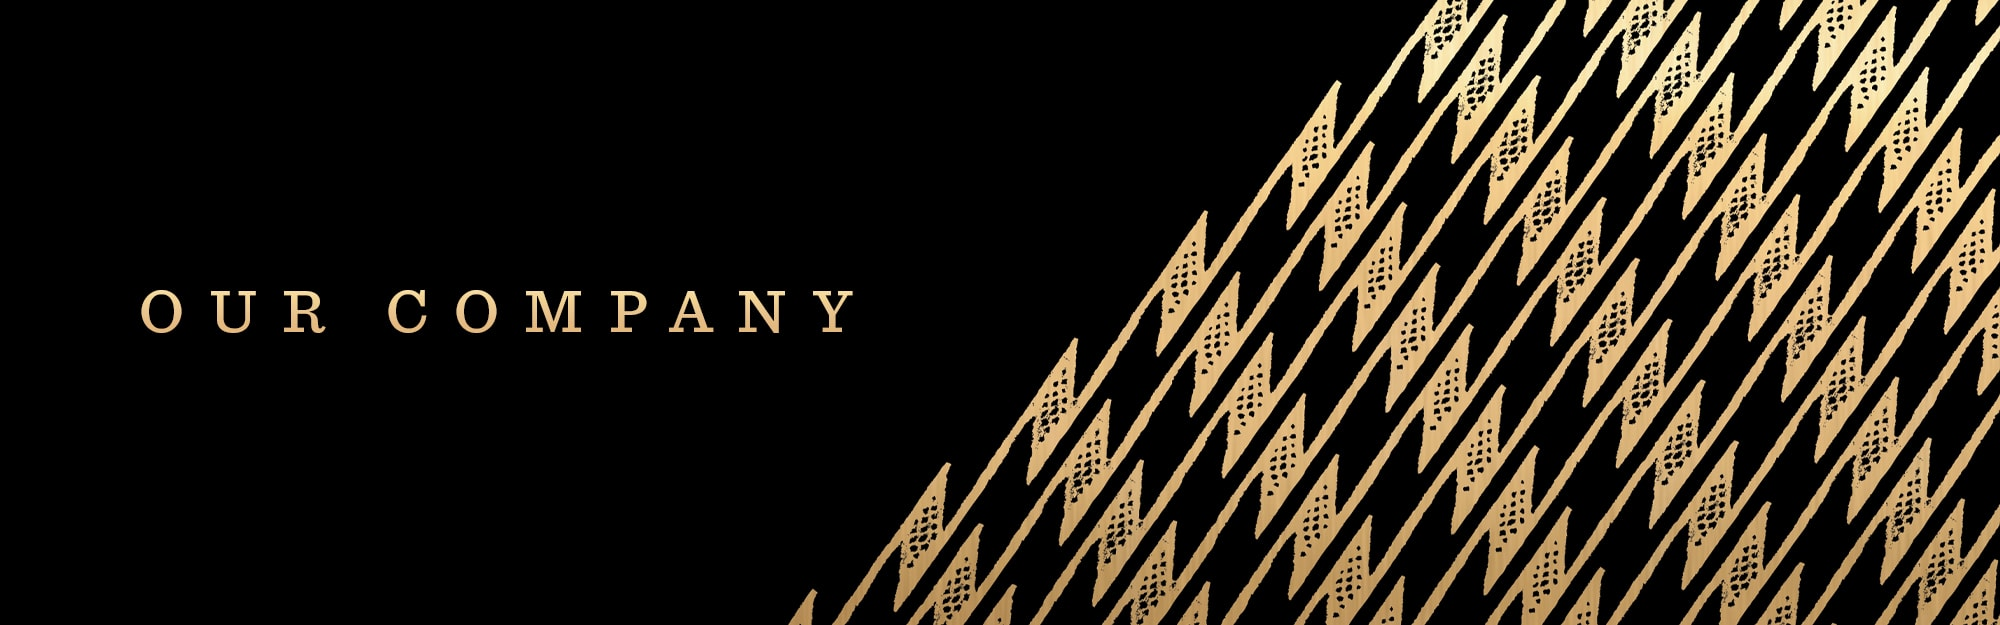 Our Company Header - Gold Print and Black Background